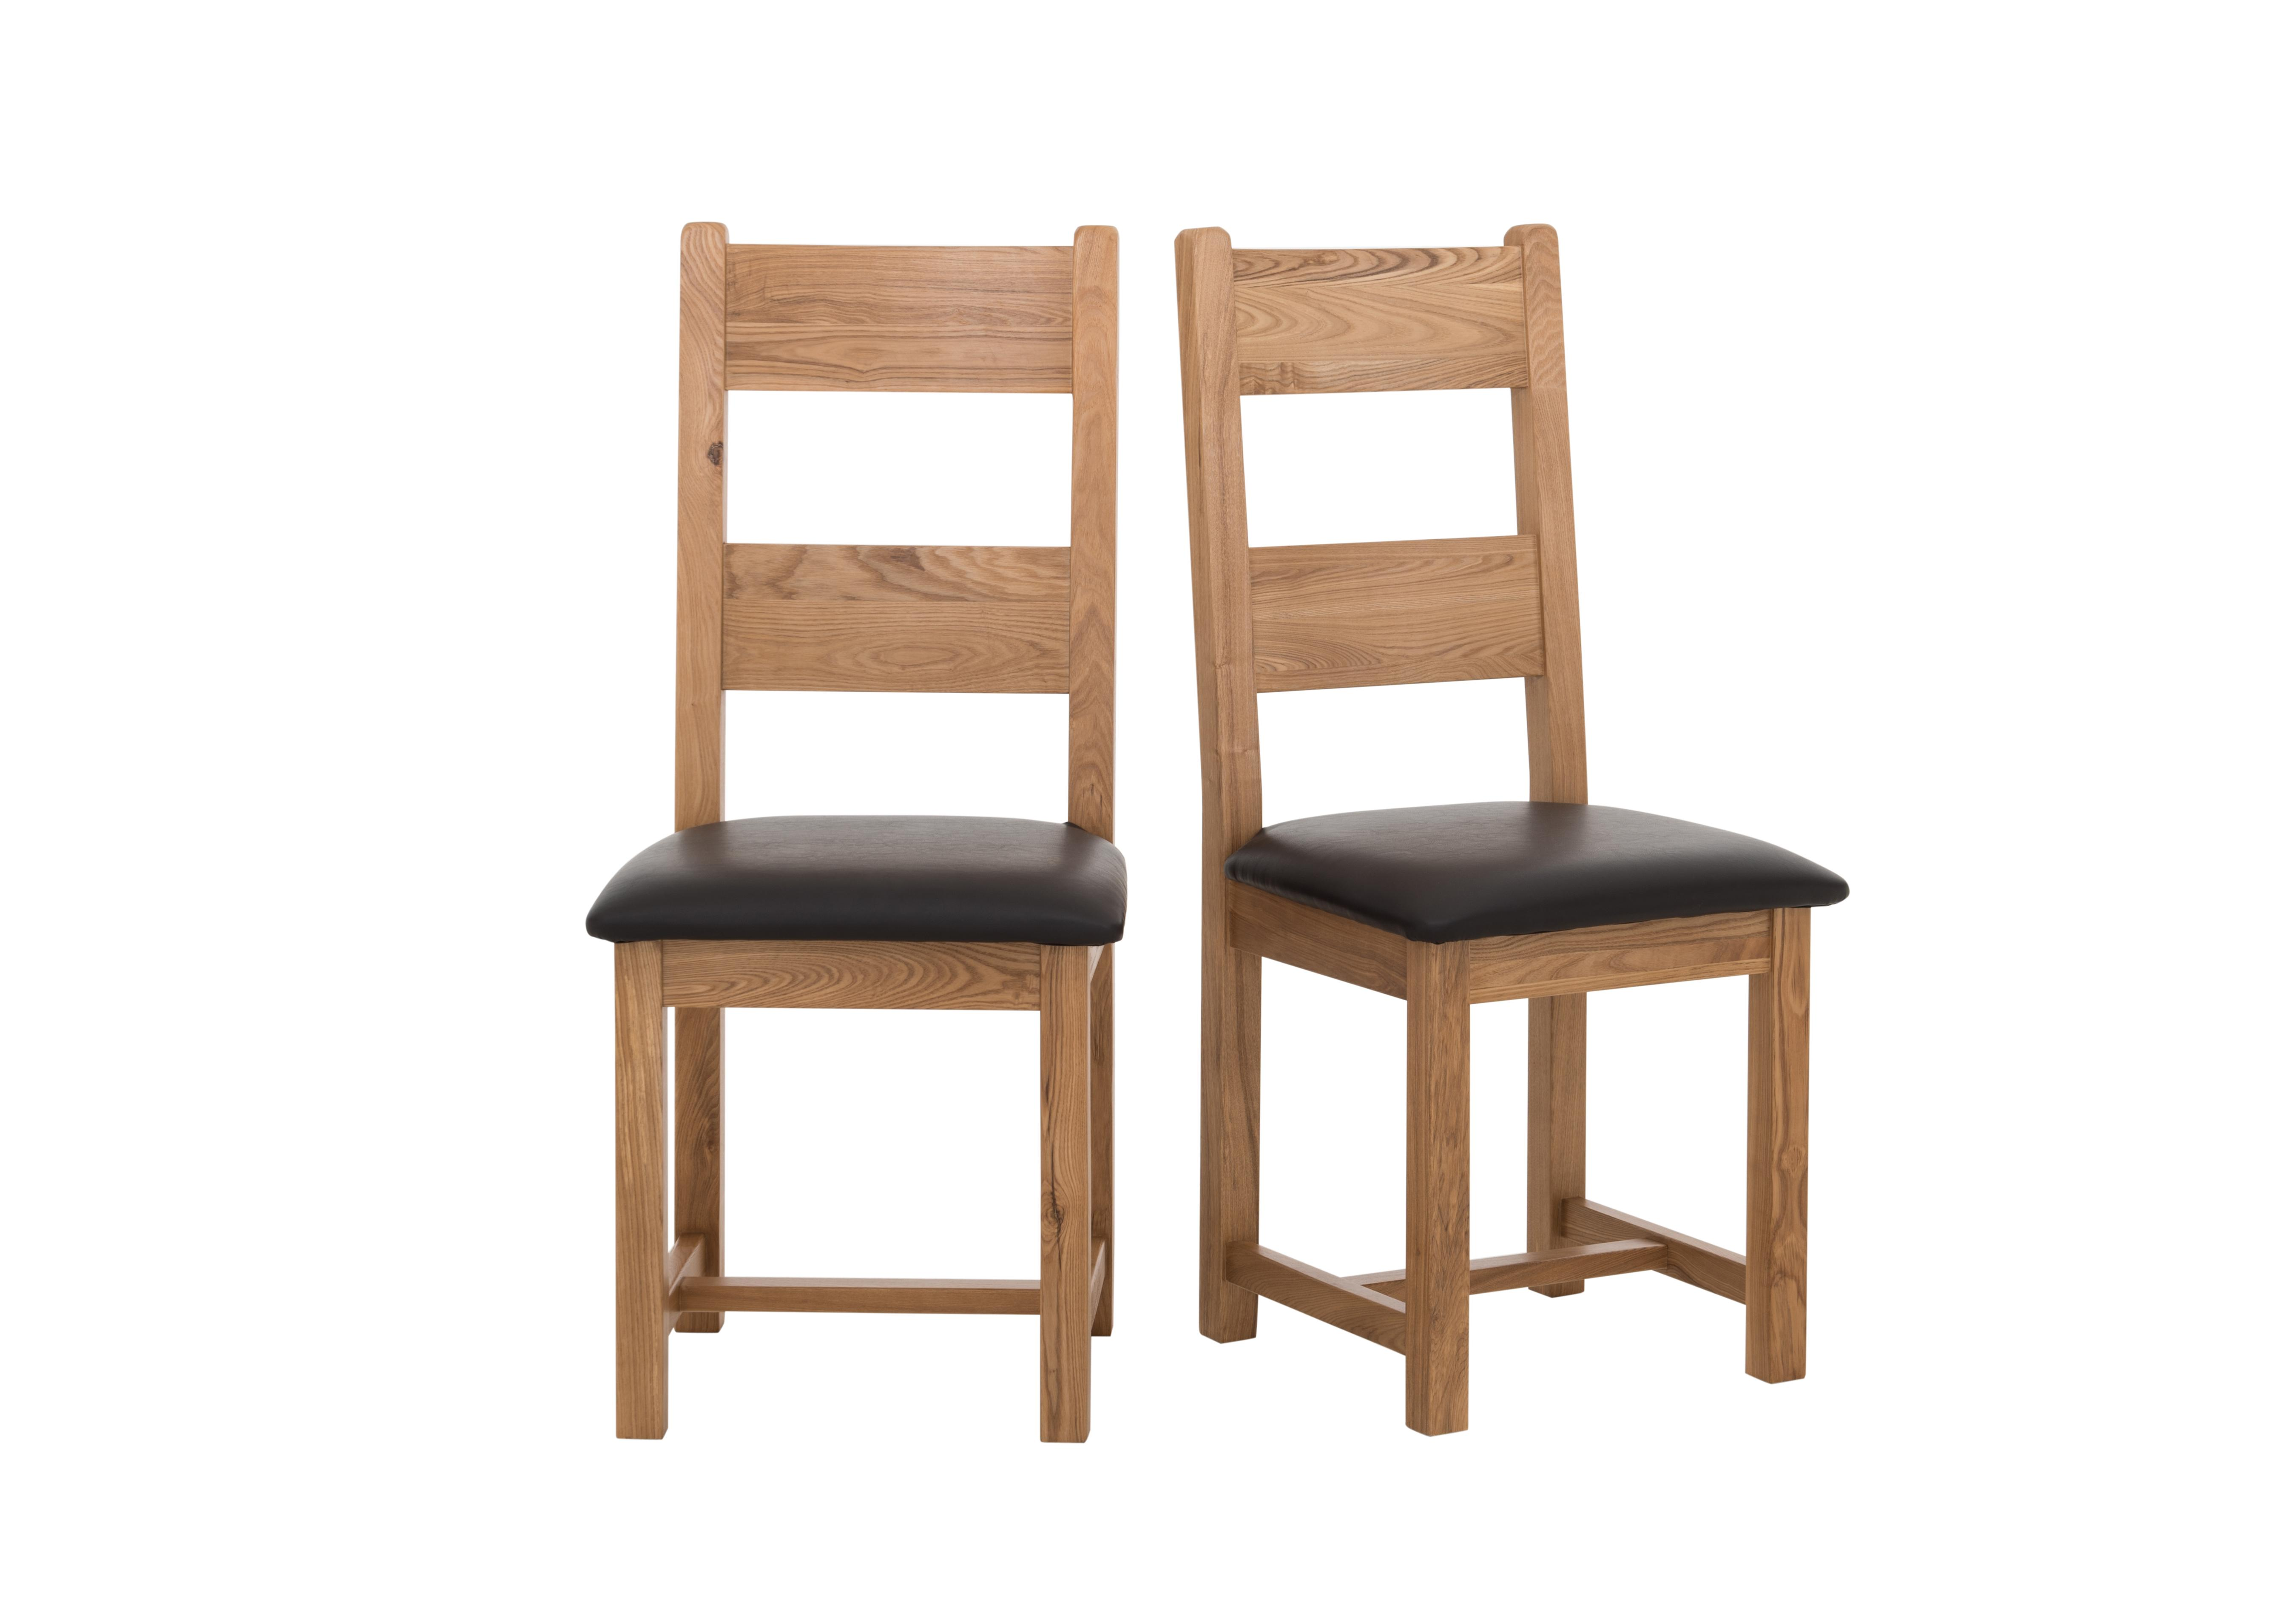 California Pair of Wood Ladderback Dining Chairs in on Furniture Village  sc 1 st  Furniture Village & Wooden dining chairs - Furniture Village